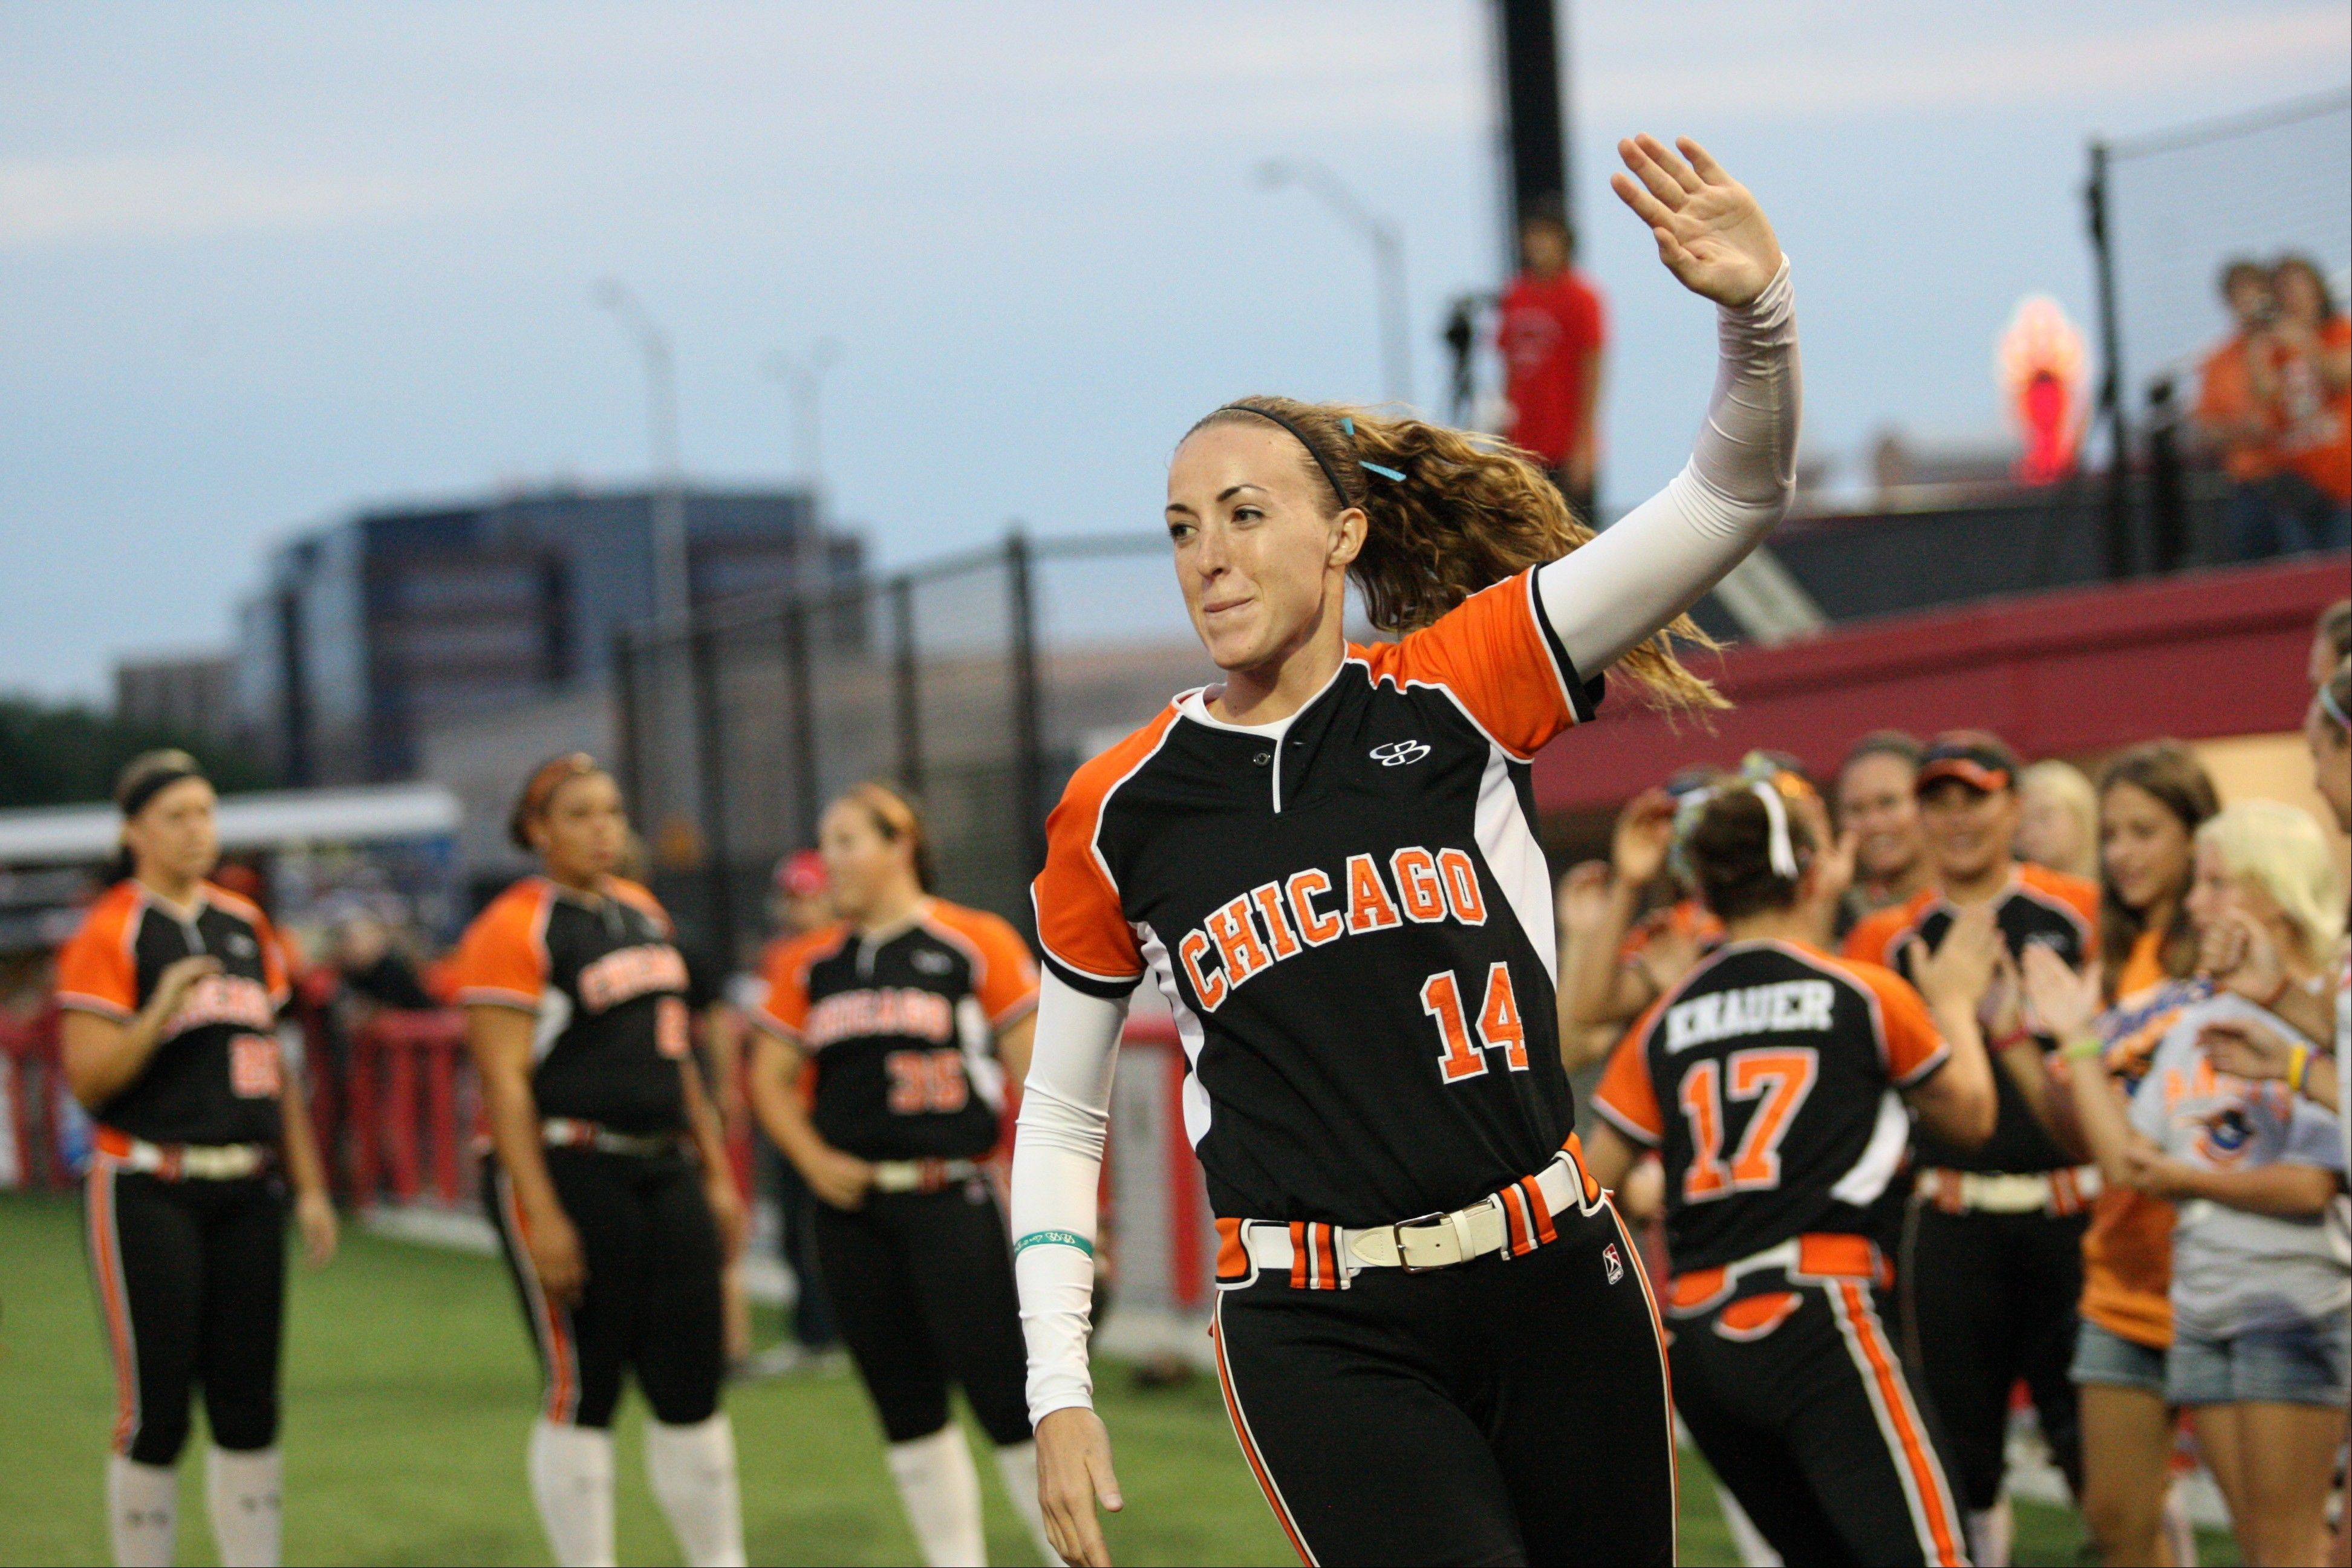 Chicago Bandits pitcher Monica Abbott will be back again to lead the NPF team for the 2012 season.